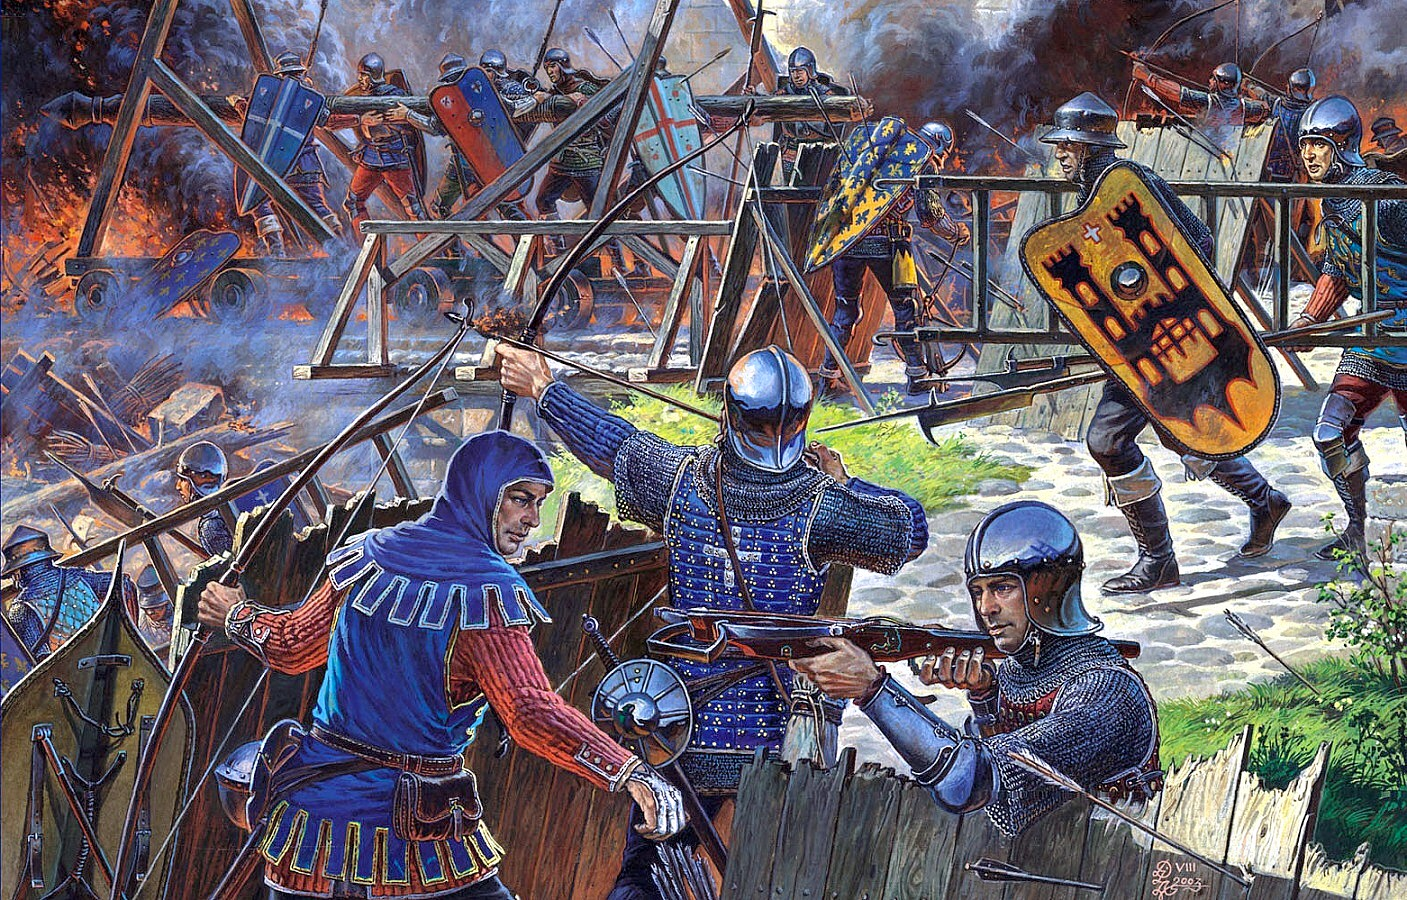 French Sol Rs Assaulting A Castle 100 Years War The